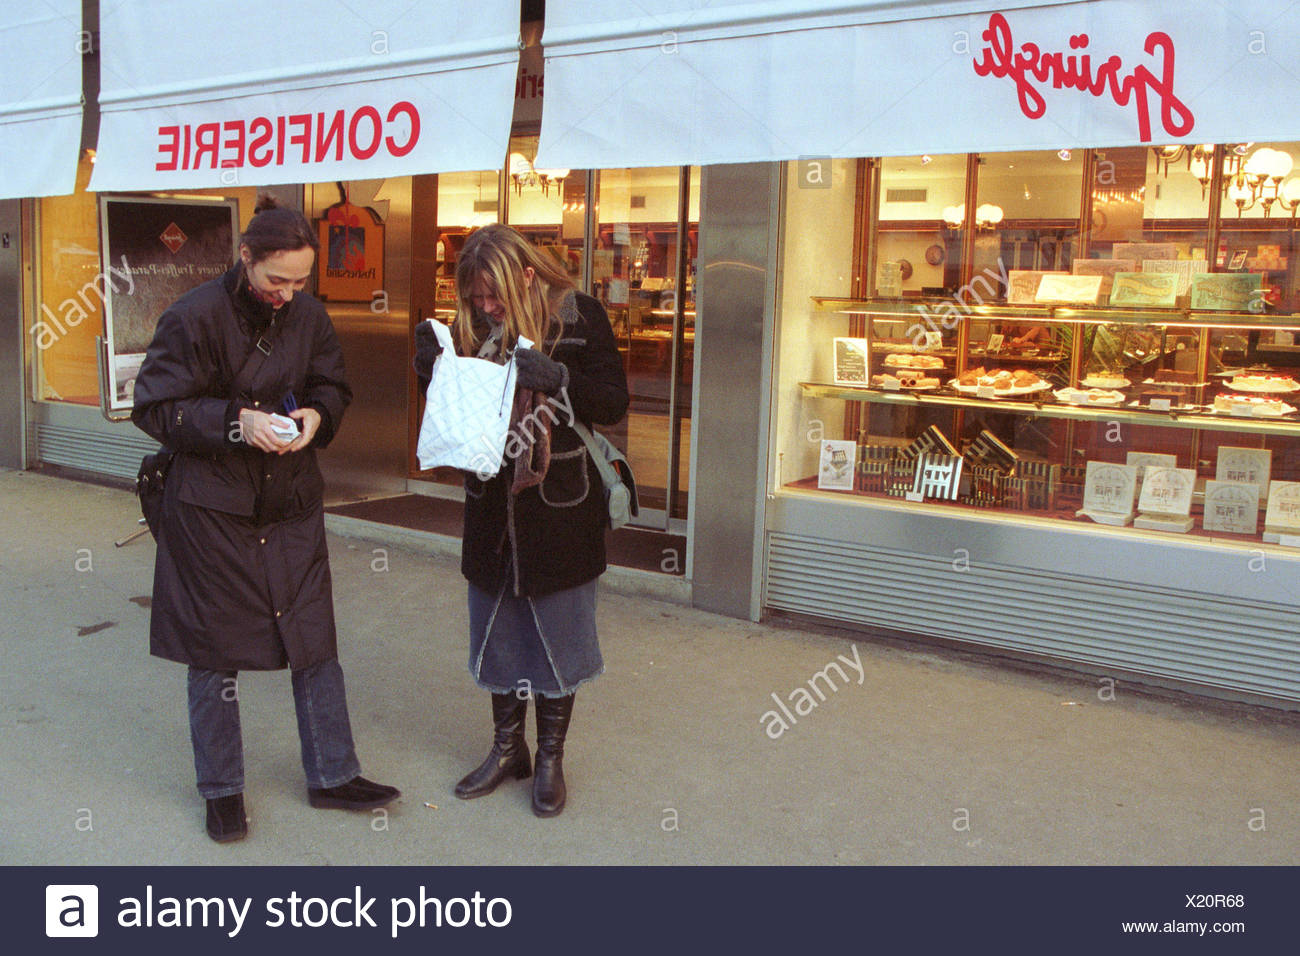 Customers of Swiss confectionery Spruengli after shopping - Stock Image